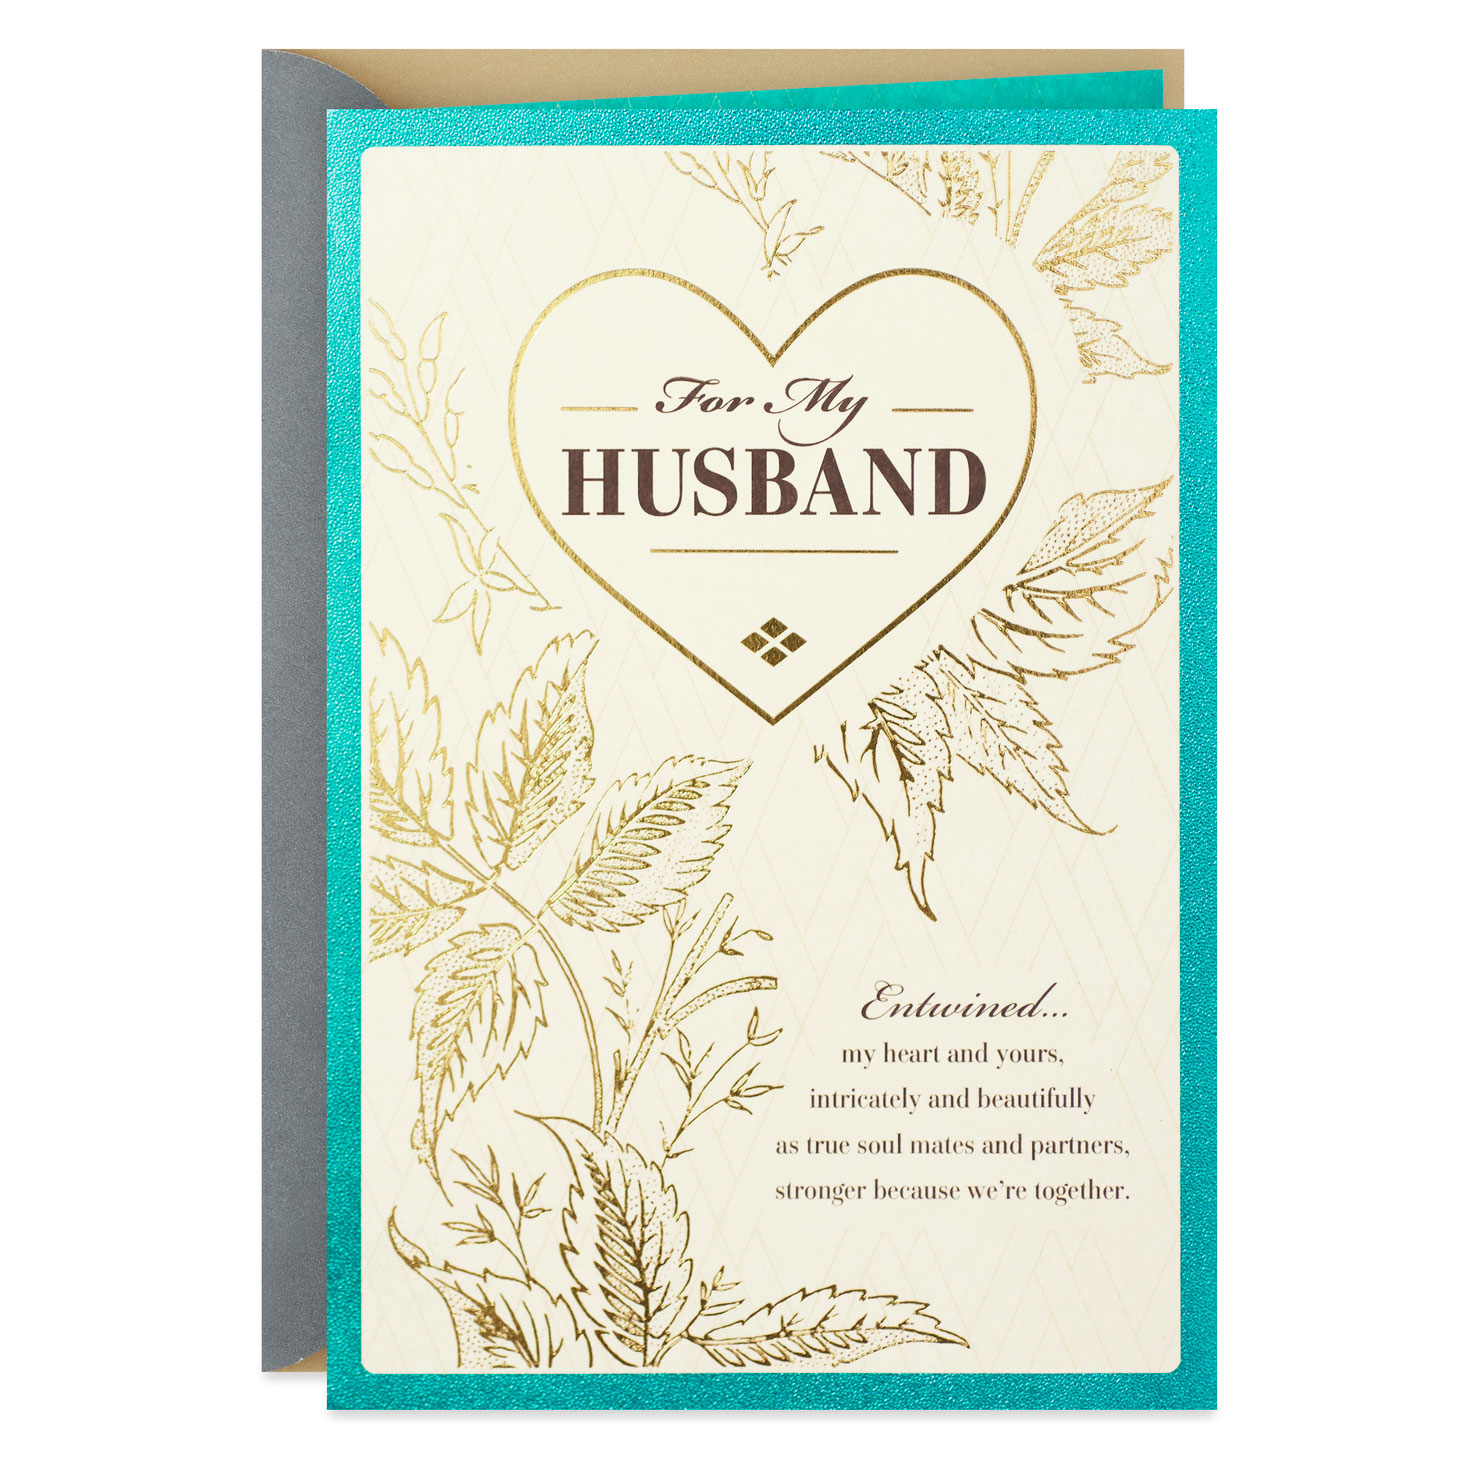 our hearts entwined birthday card for husband  greeting